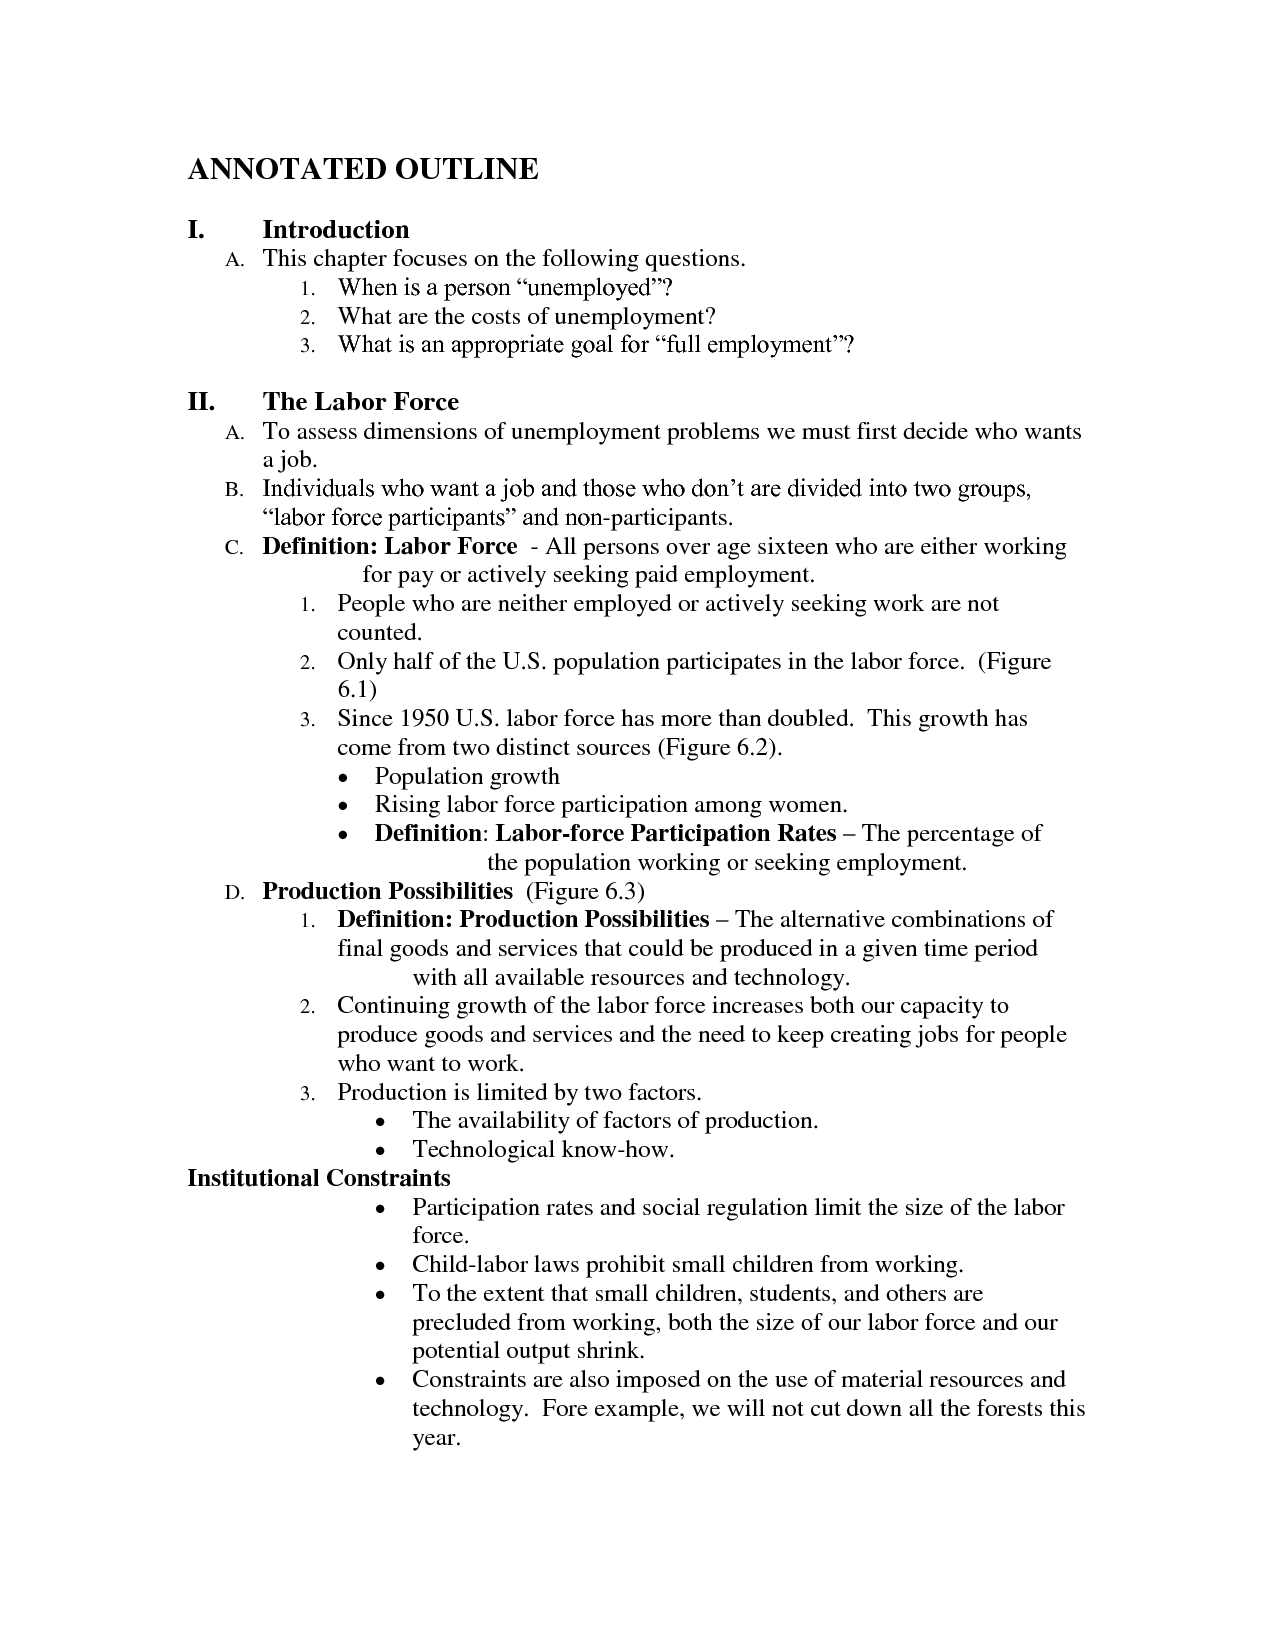 021 Annotated Outline Apa Format 82075 Research Paper How To Write Magnificent A Style Full